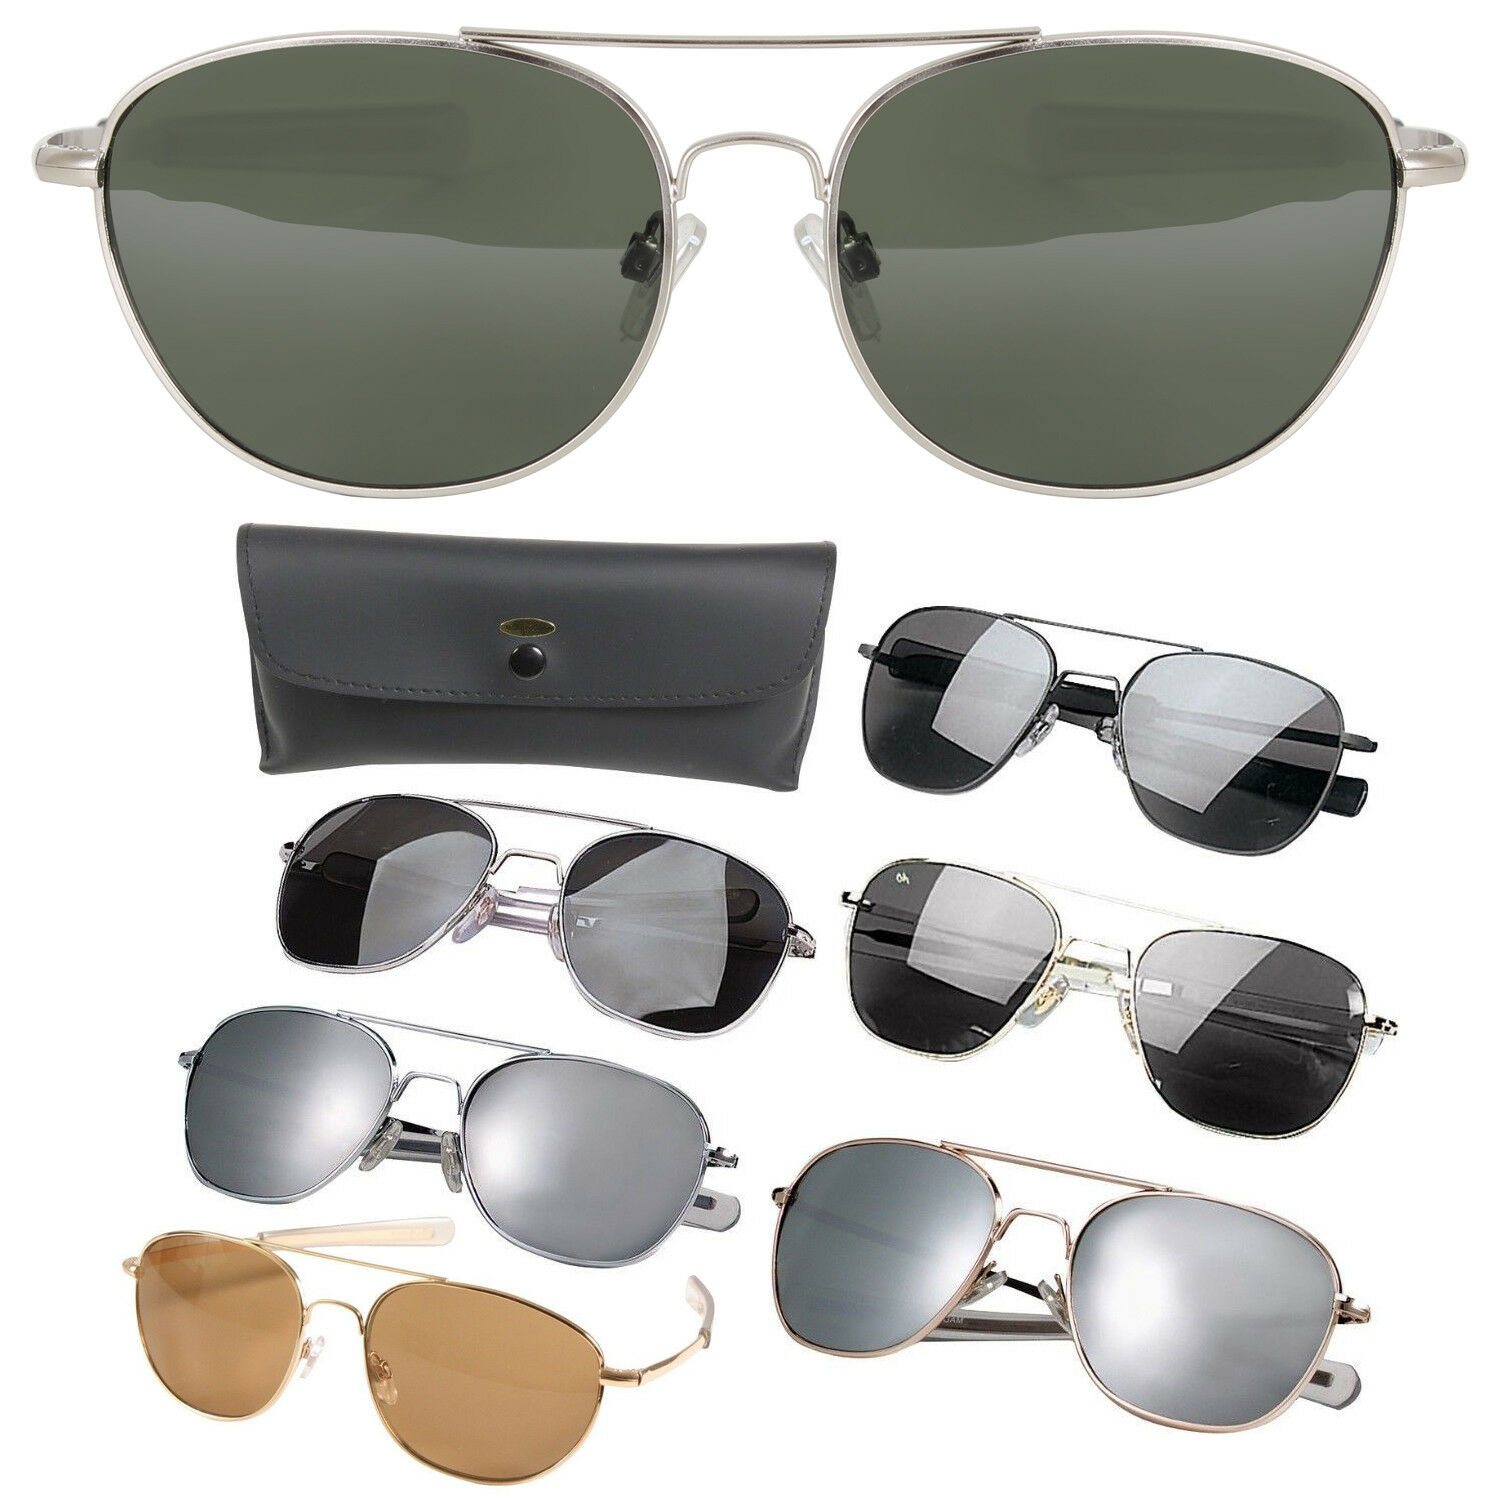 AVIATOR US AIR Force Style Pilot Sunglasses Military Army Frames ...